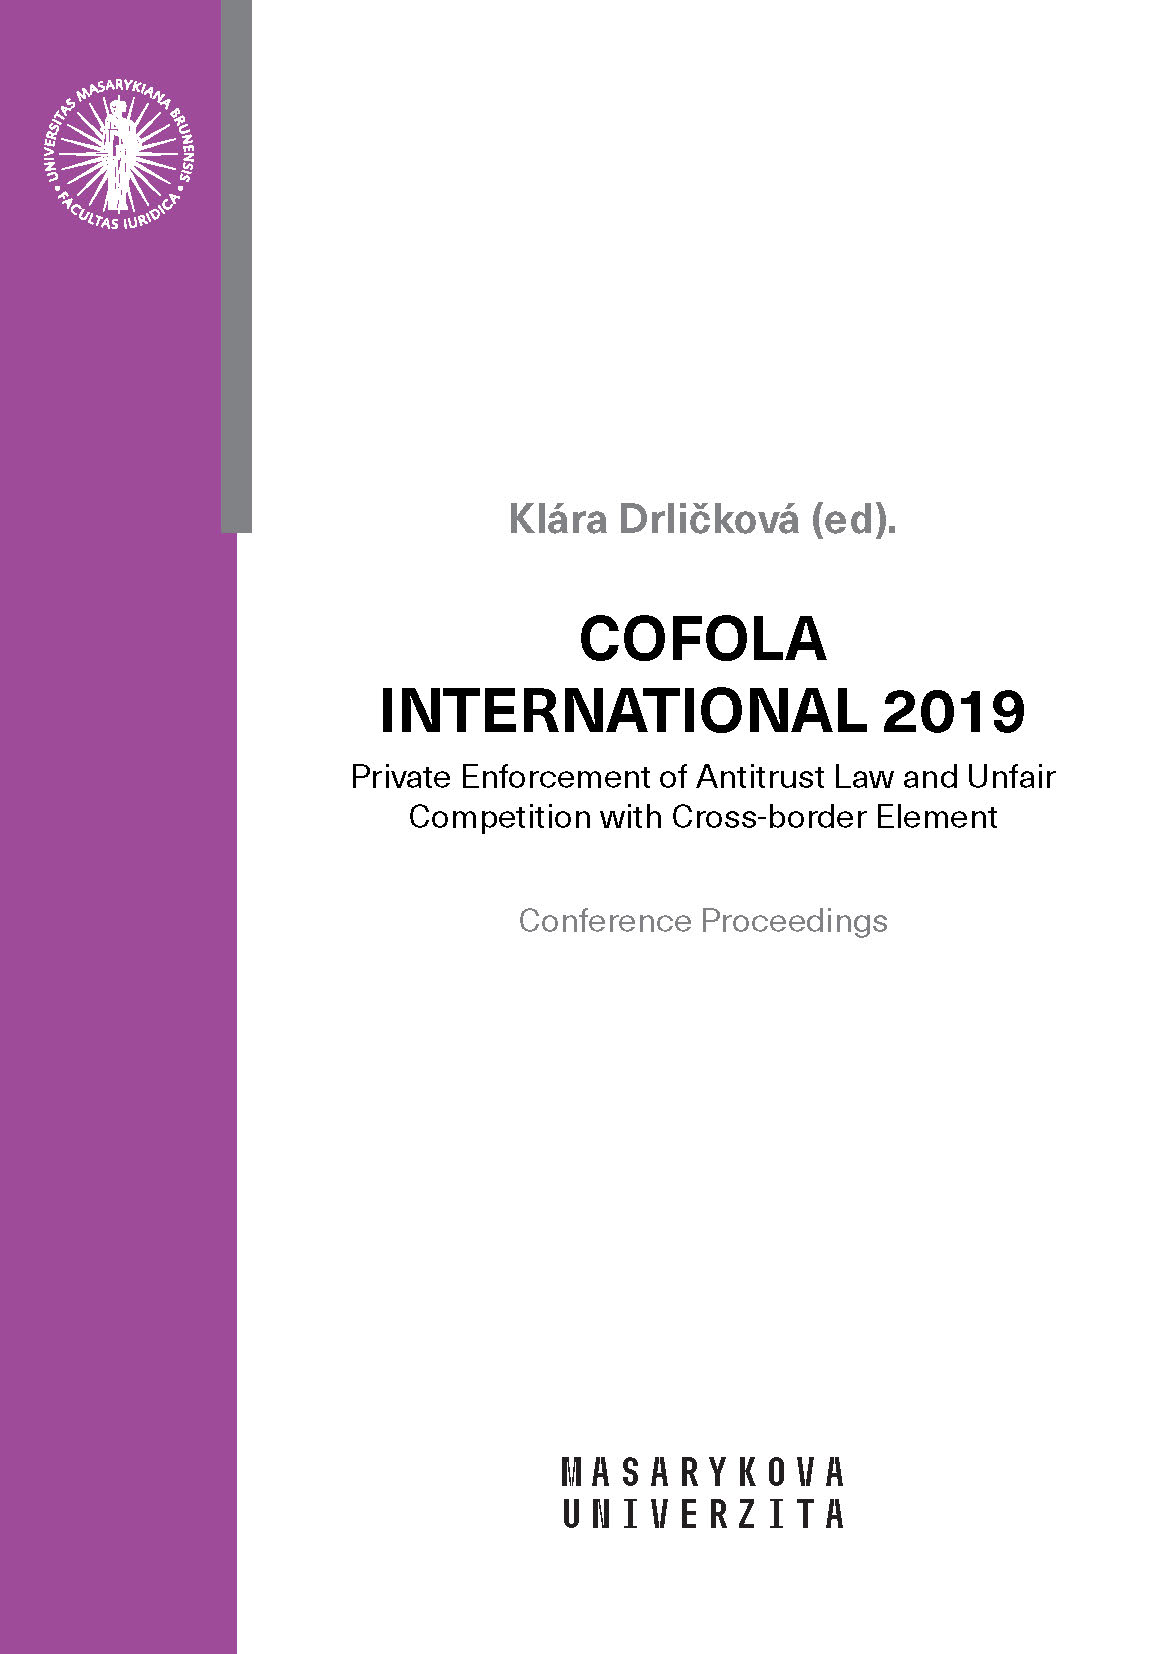 Obálka pro Cofola International 2019. Private Enforcement of Antitrust Law and Unfair Competition with Cross-border Element. Conference Proceedings